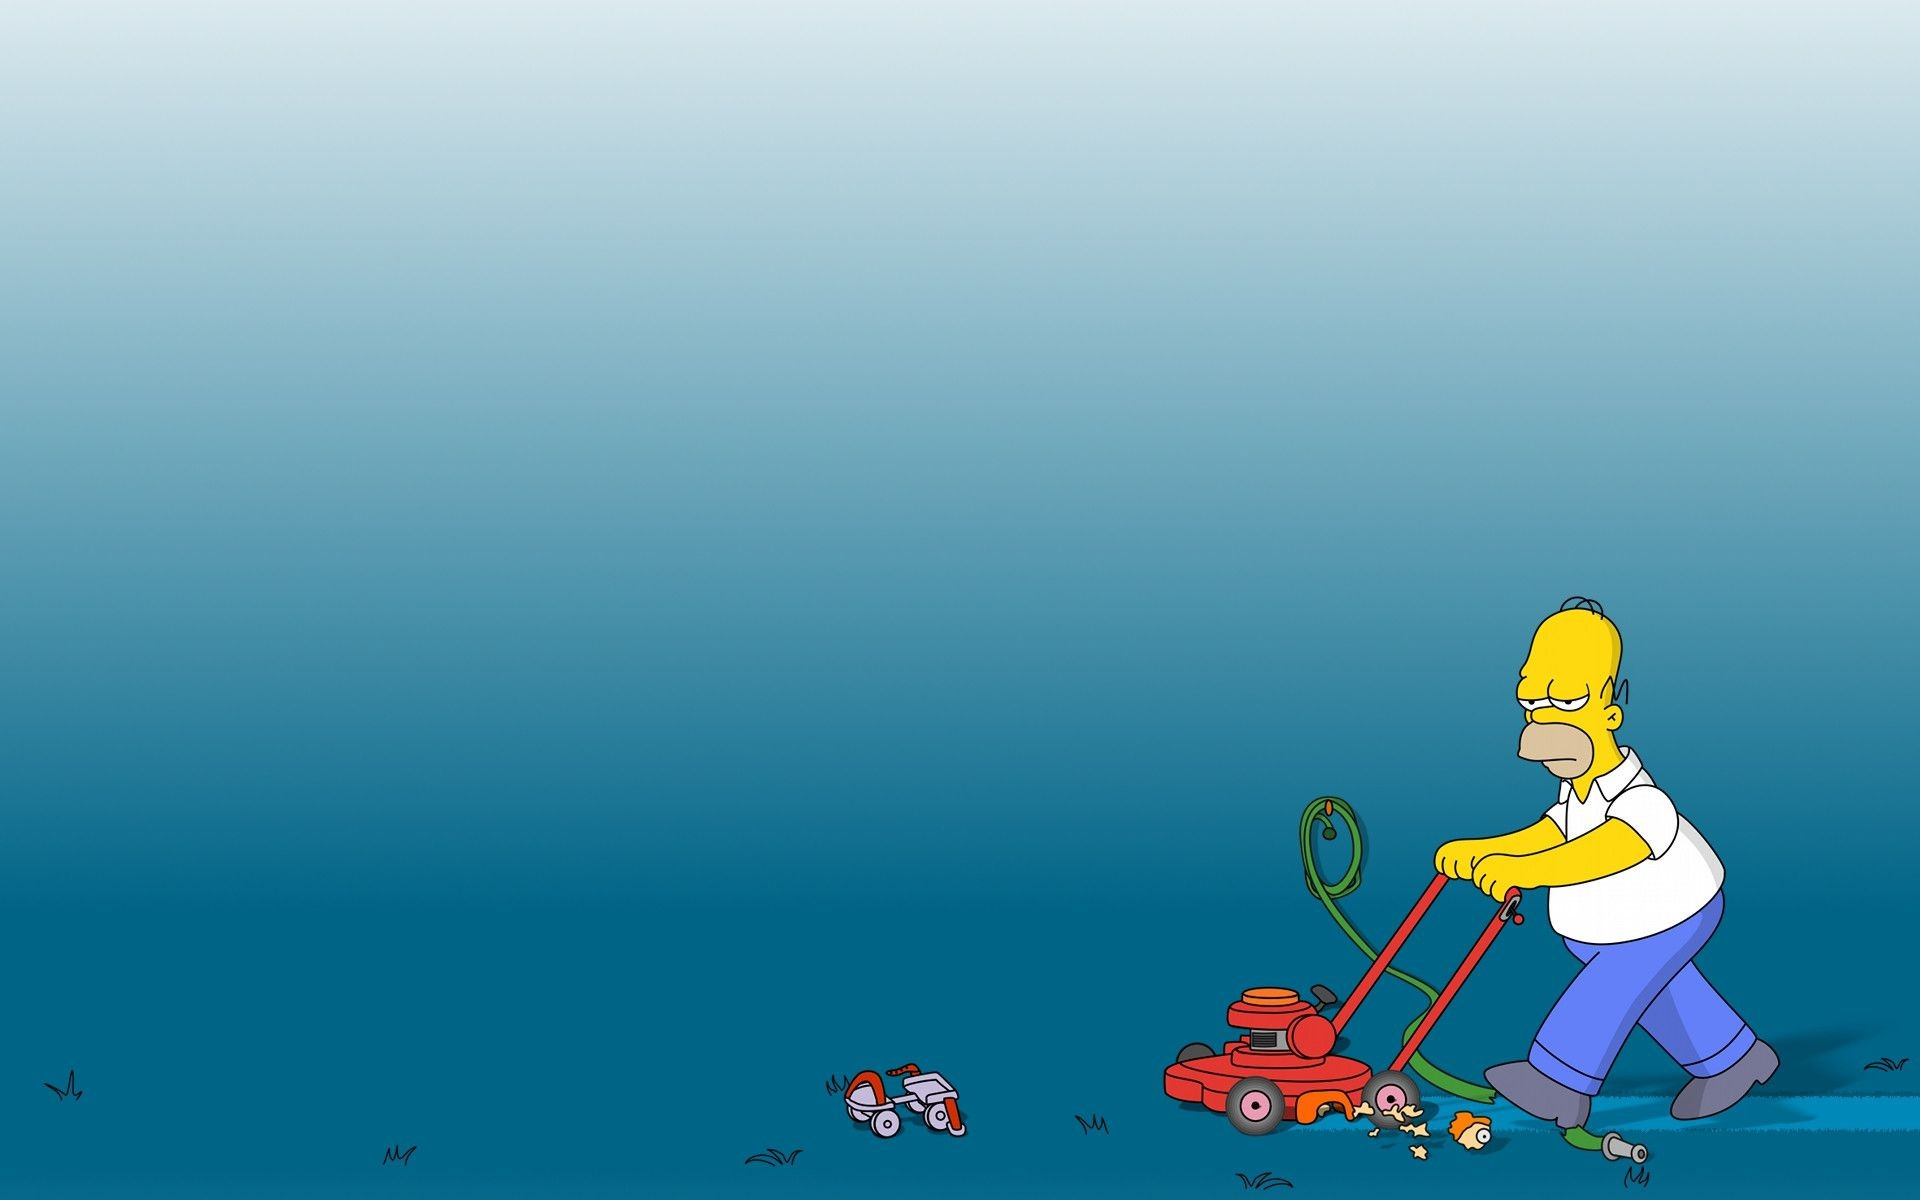 Simpsons wallpaper ·① download free awesome high resolution.